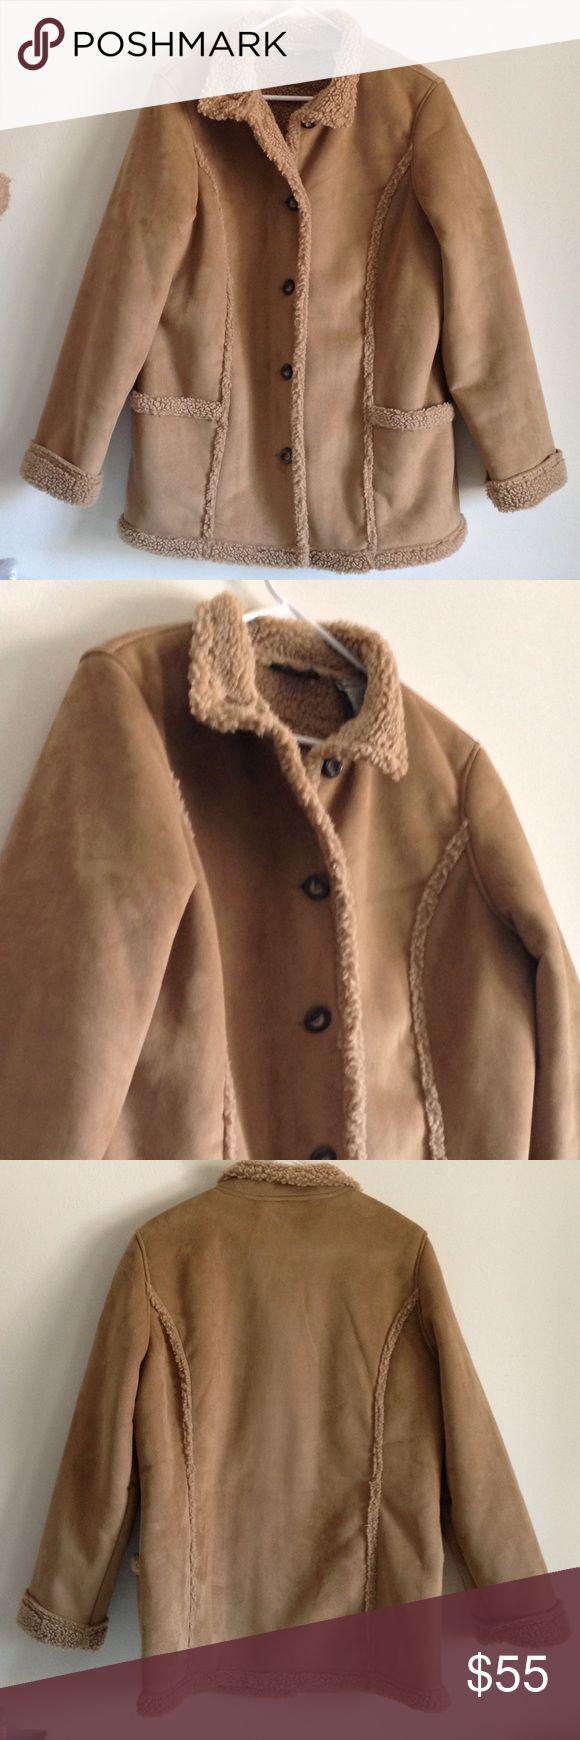 "L.L.Bean Faux Suede Shearling Coat Comfort, warmth, and stylish. Sherpa lined. 2 side pockets. Buttons. Face: 100% polyester. Back: 80% acrylic and 20% polyester. Measurement laying flat: bust: 22"" length: 31"" It look alike brand new - worn about 3 times or less. No stains or holes. L.L. Bean Jackets & Coats"